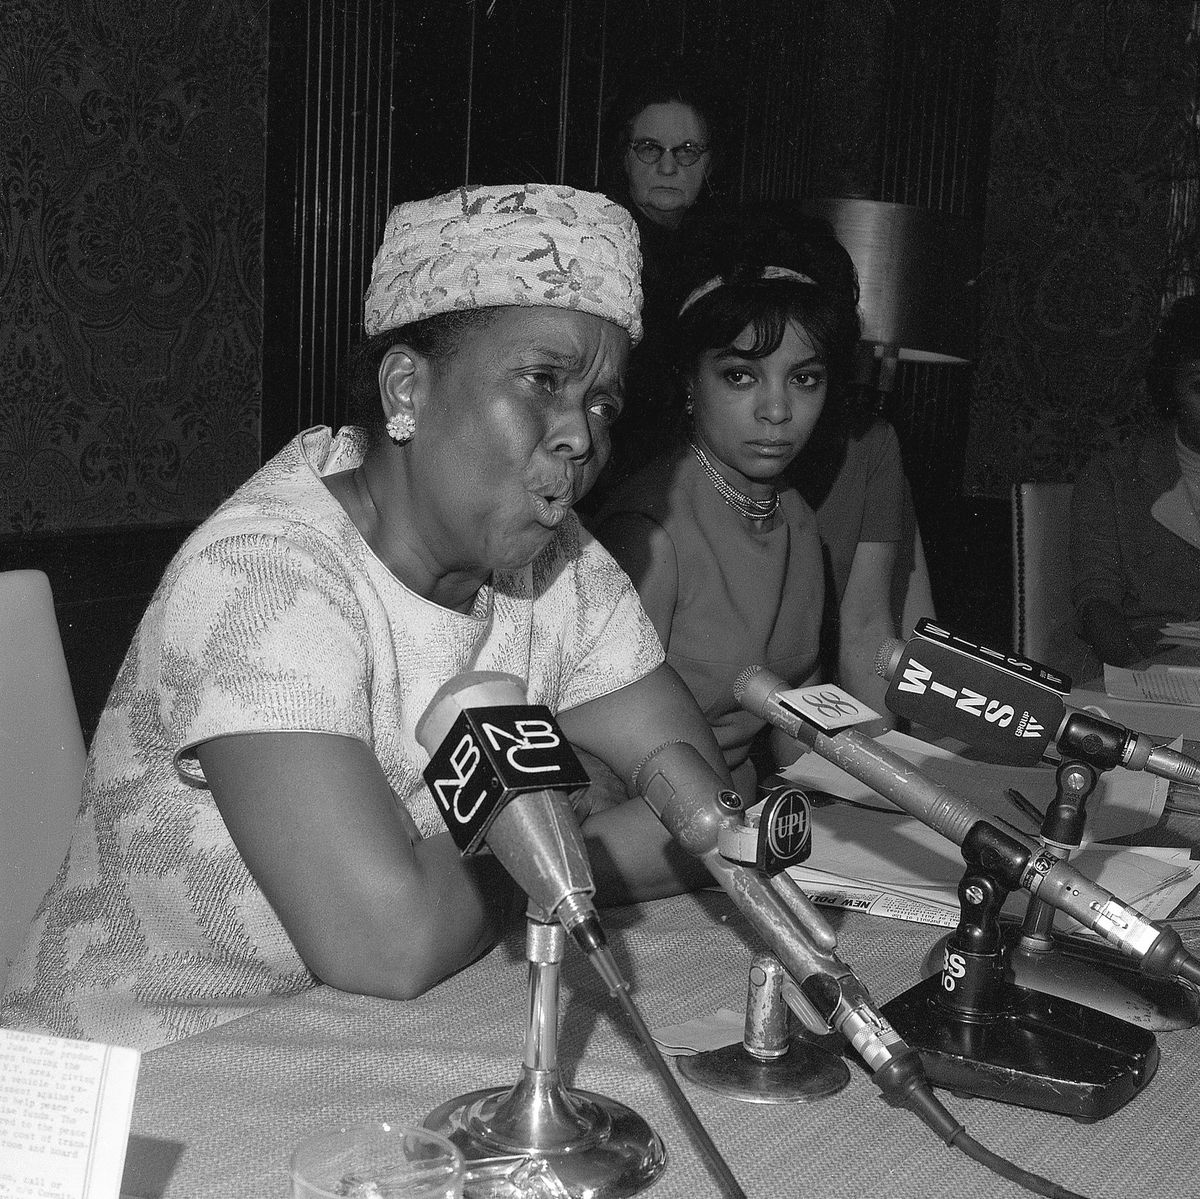 Baker, in a dress with a diamond print and a pill box hat covered in flowers, speaks emphatically into a group of microphones featuring the logos of news organizations like WINS, NBC, and EPI.